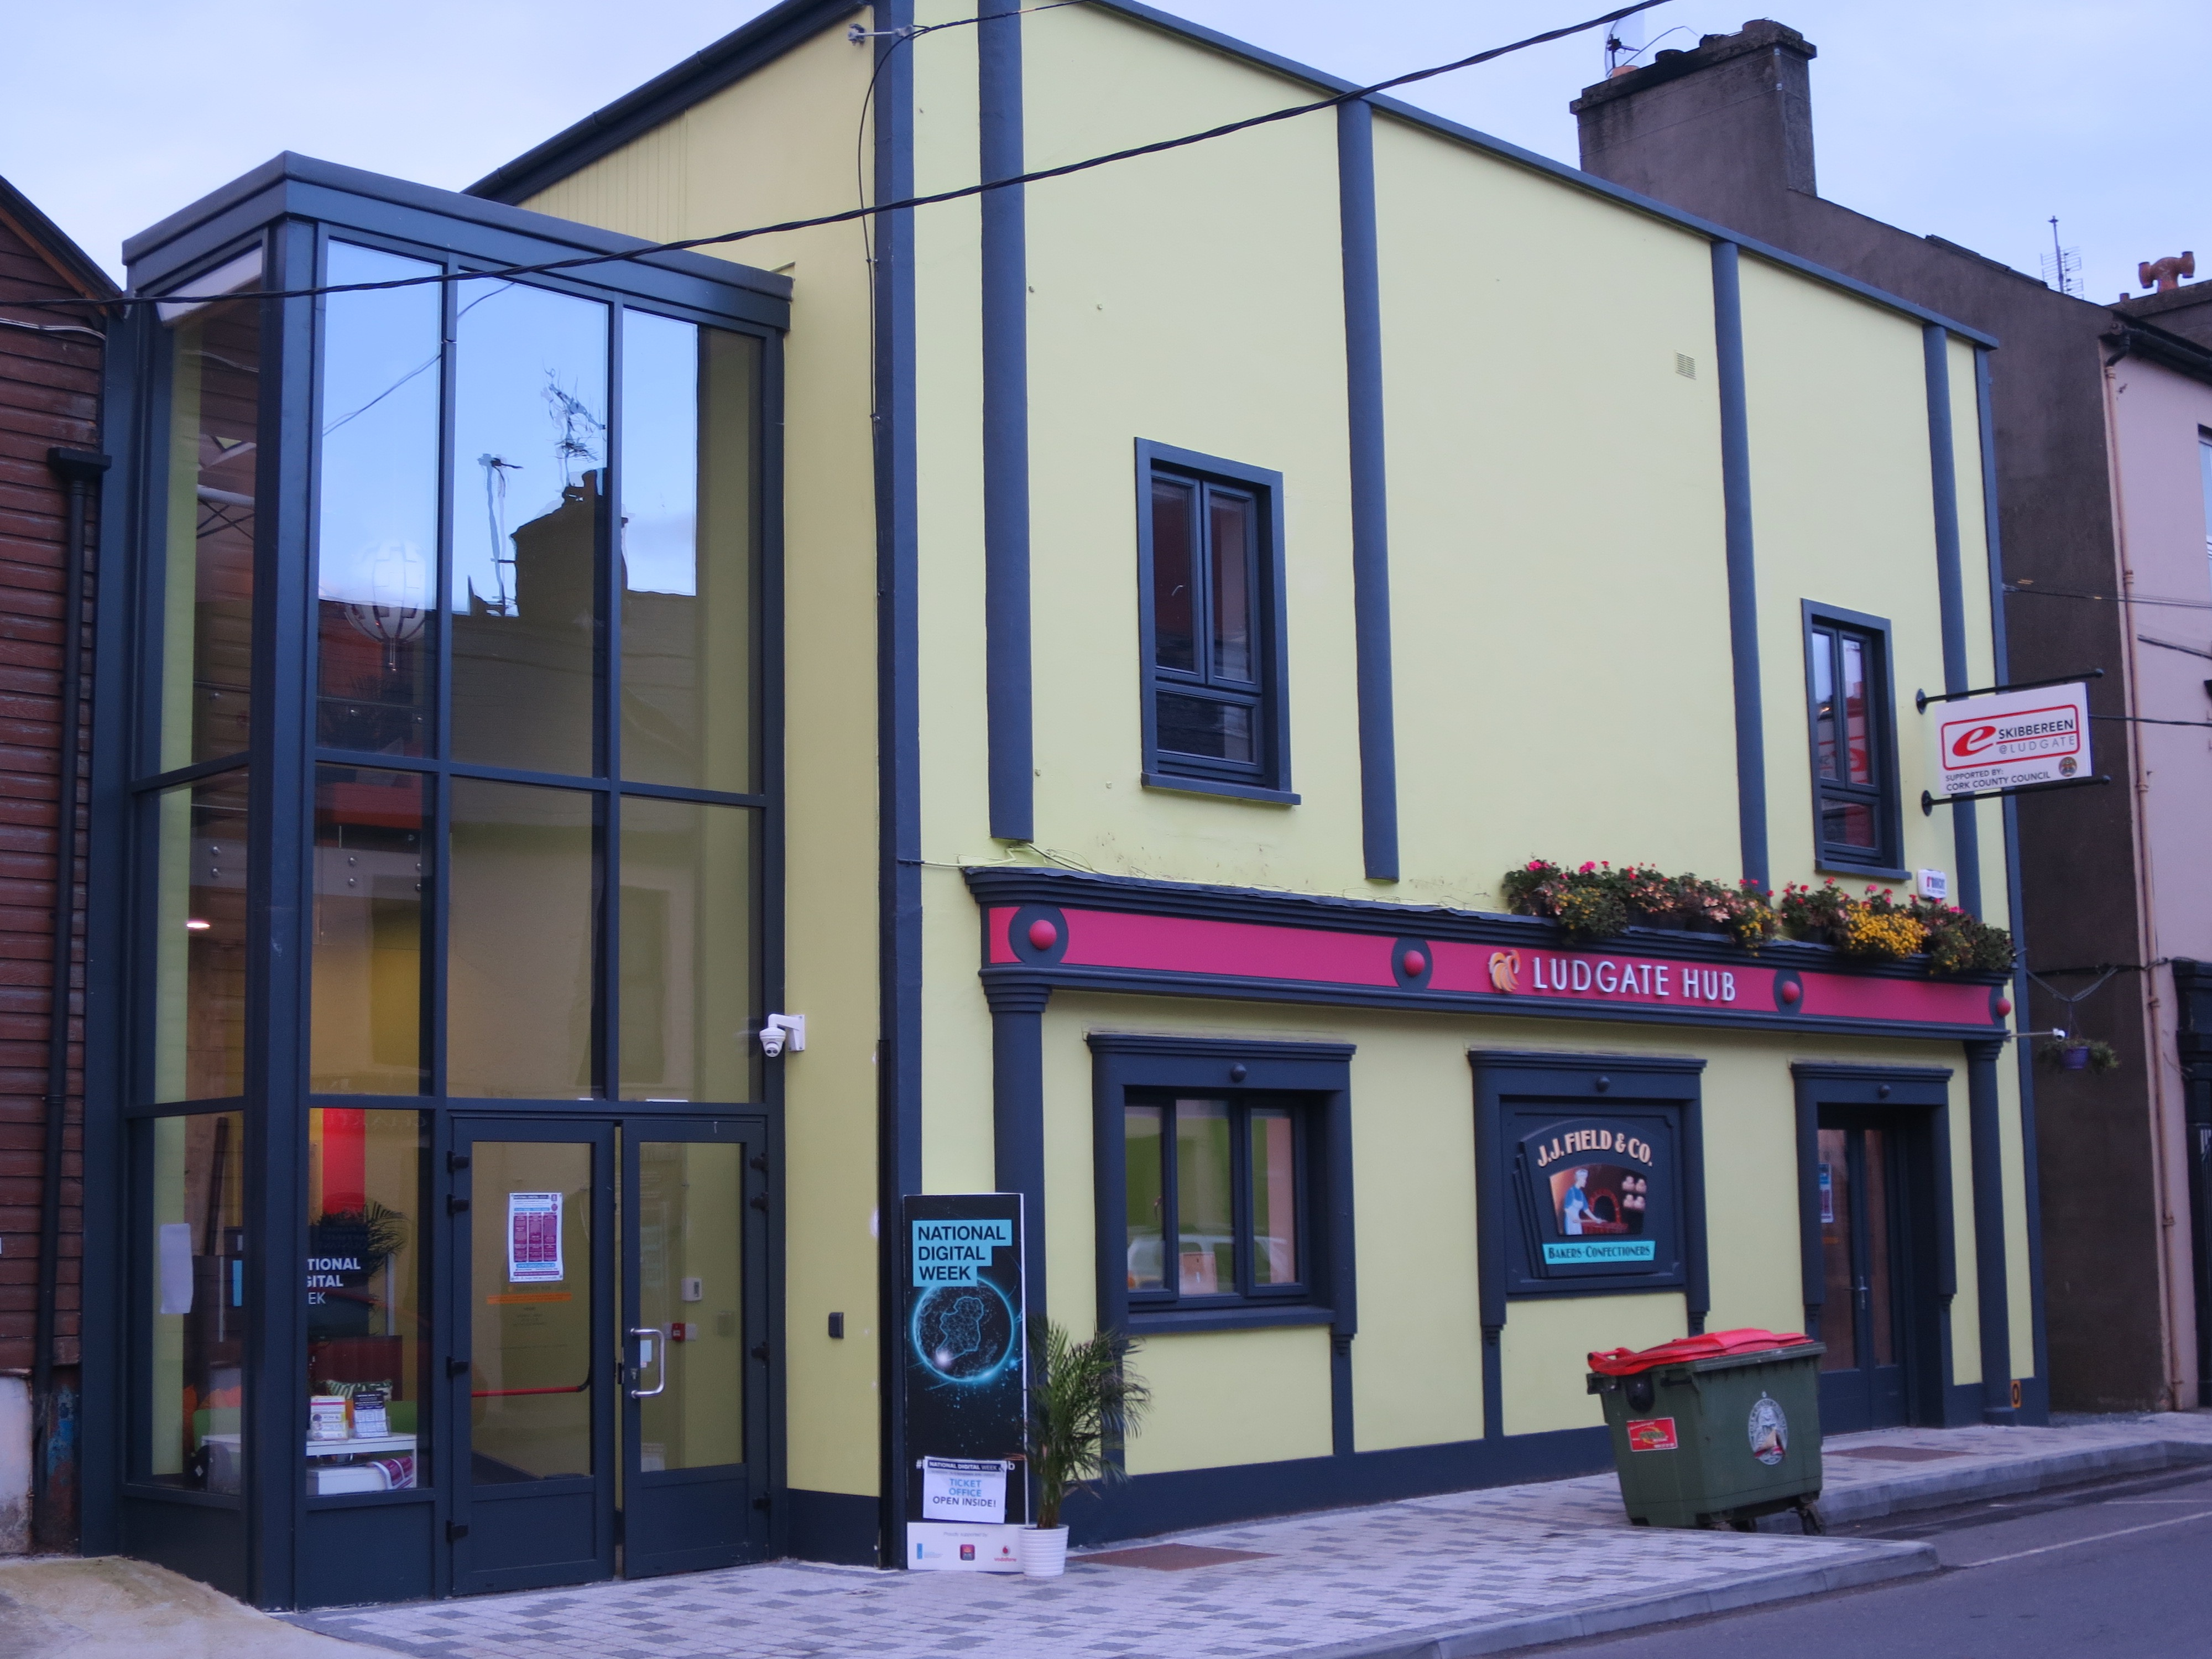 1gb ludgate hub in irelands first 1gb town hosts cork clergy 1gb ludgate hub in irelands first 1gb town hosts cork clergy meetings latest news from the church of ireland diocese of cork cloyne and ross malvernweather Choice Image